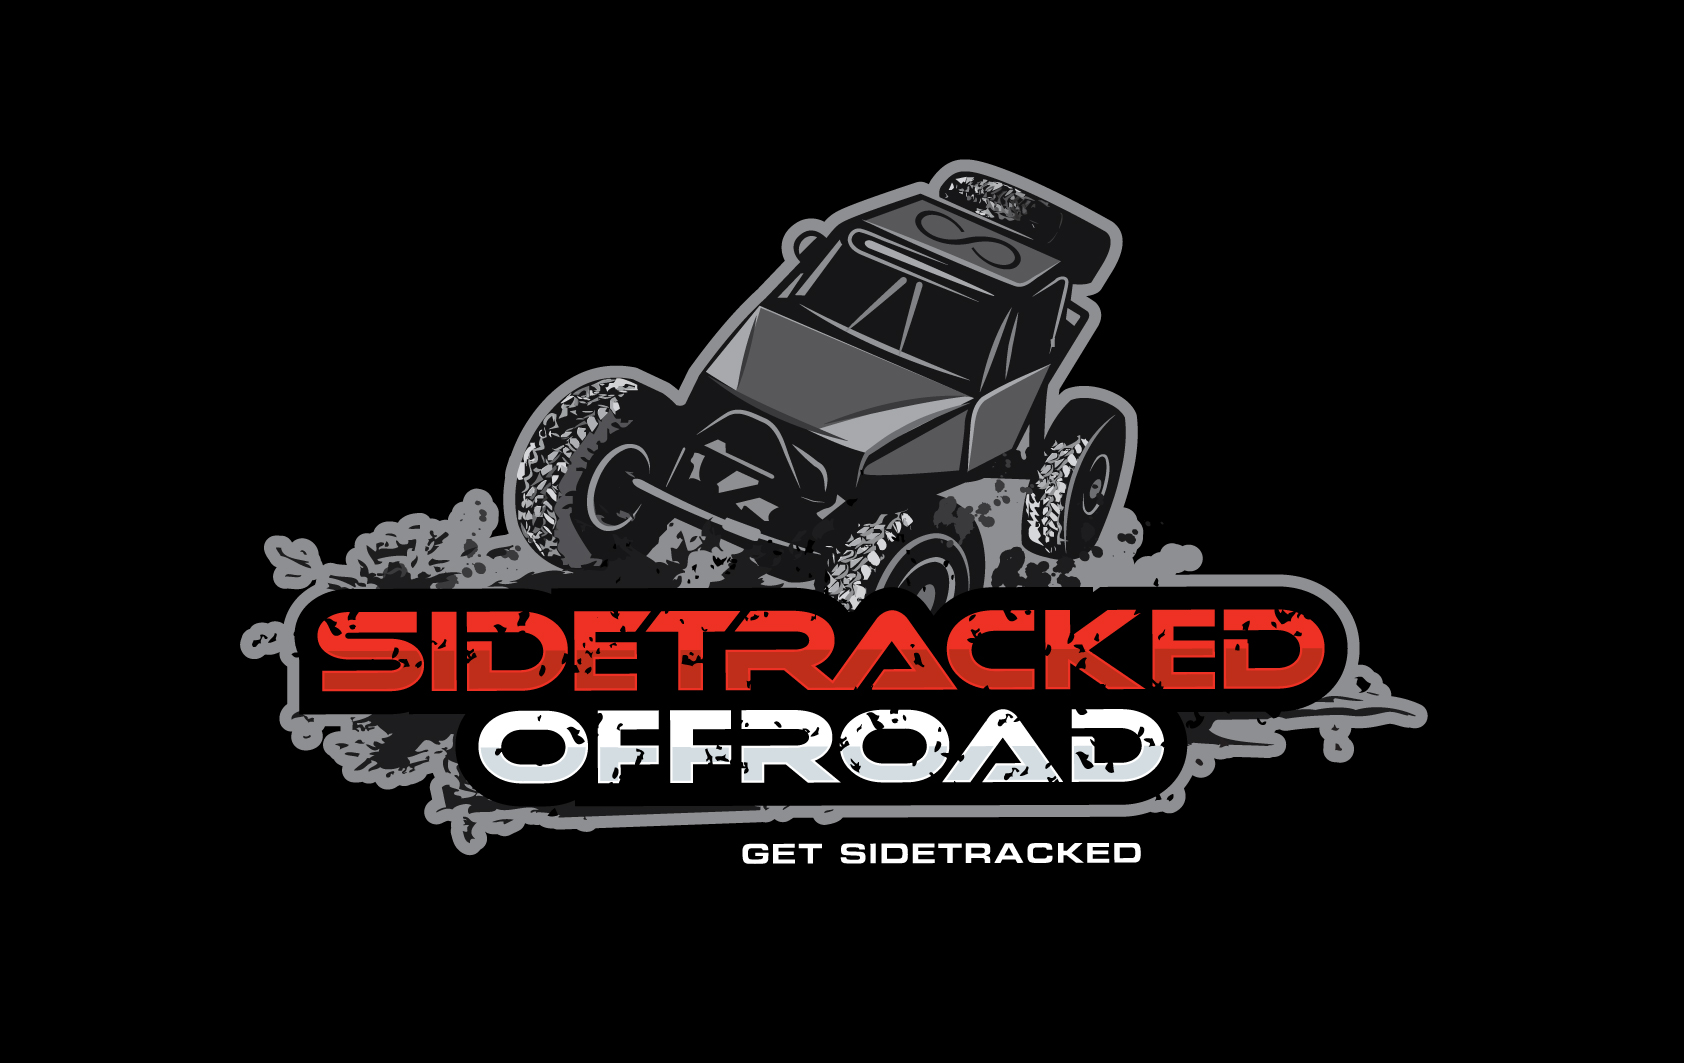 SideTracked Off Road